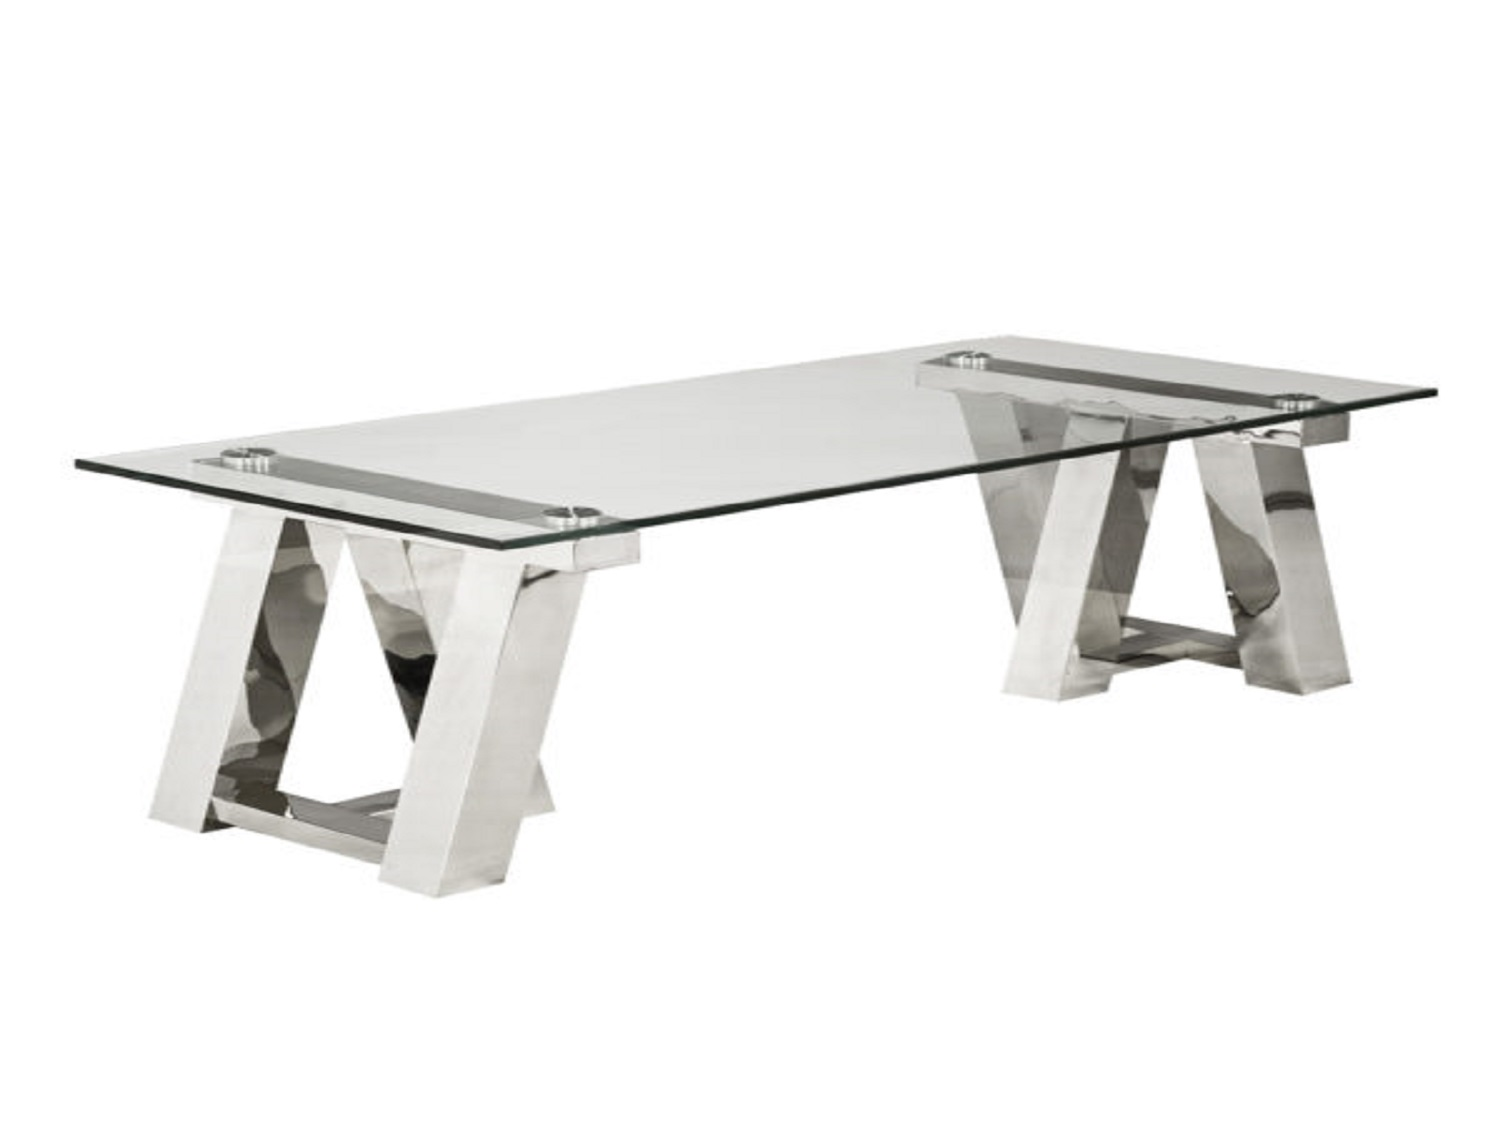 Vaughan Coffee Table, GY-CT7712, Cofee Table by Midha Furniture to Brampton, Mississauga, Etobicoke, Toronto, Scraborough, Caledon, Oakville, Markham, Ajax, Pickering, Oshawa, Richmondhill, Kitchener, Hamilton and GTA area